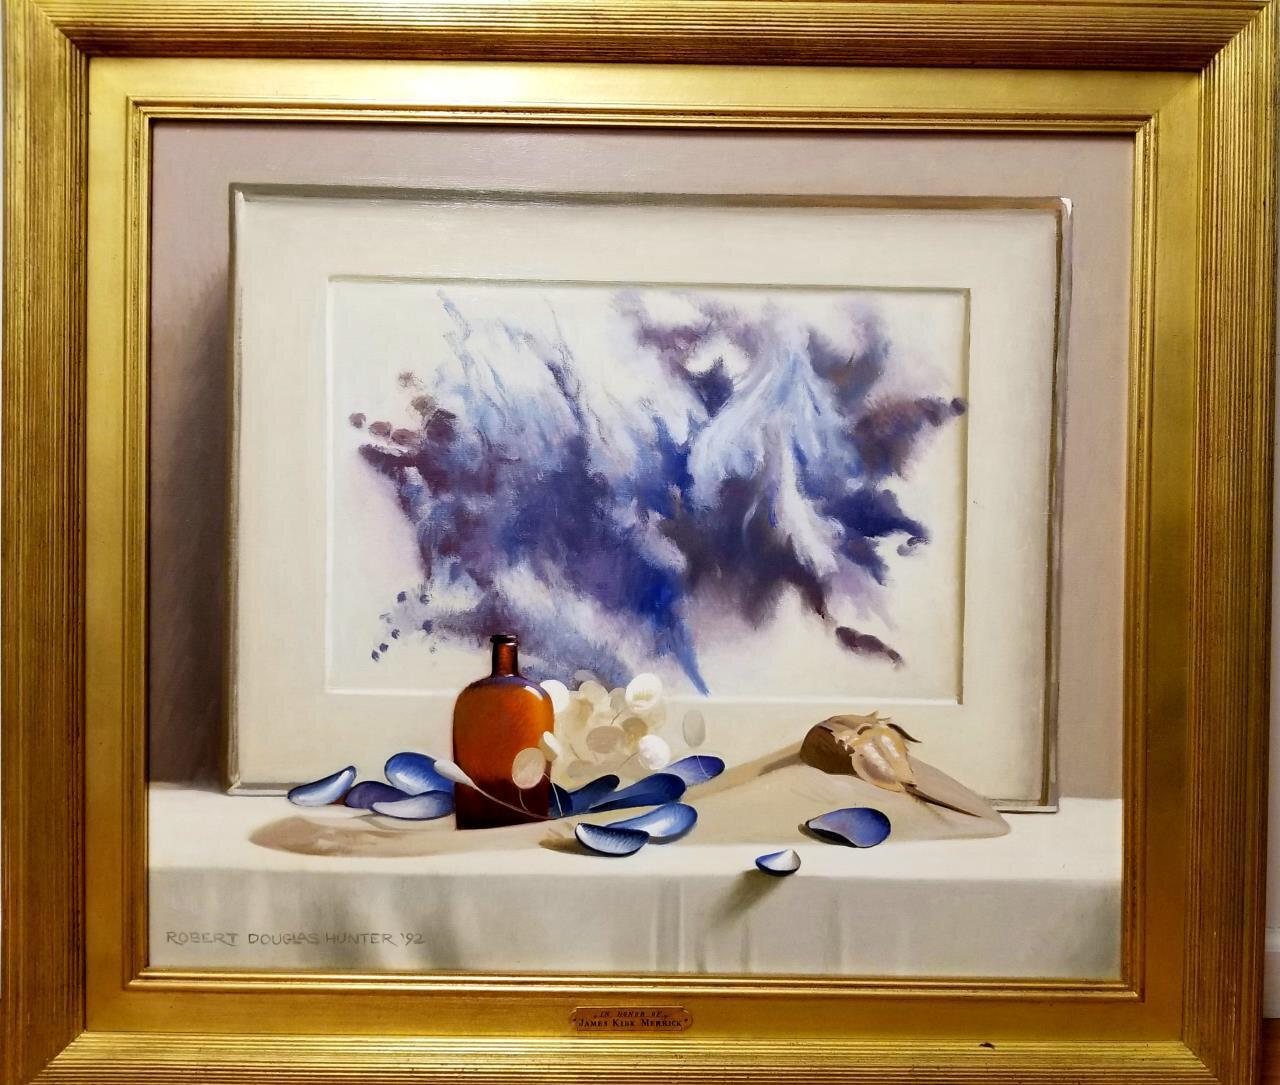 Painting Oil on Canvas by Robert Douglas Hunter